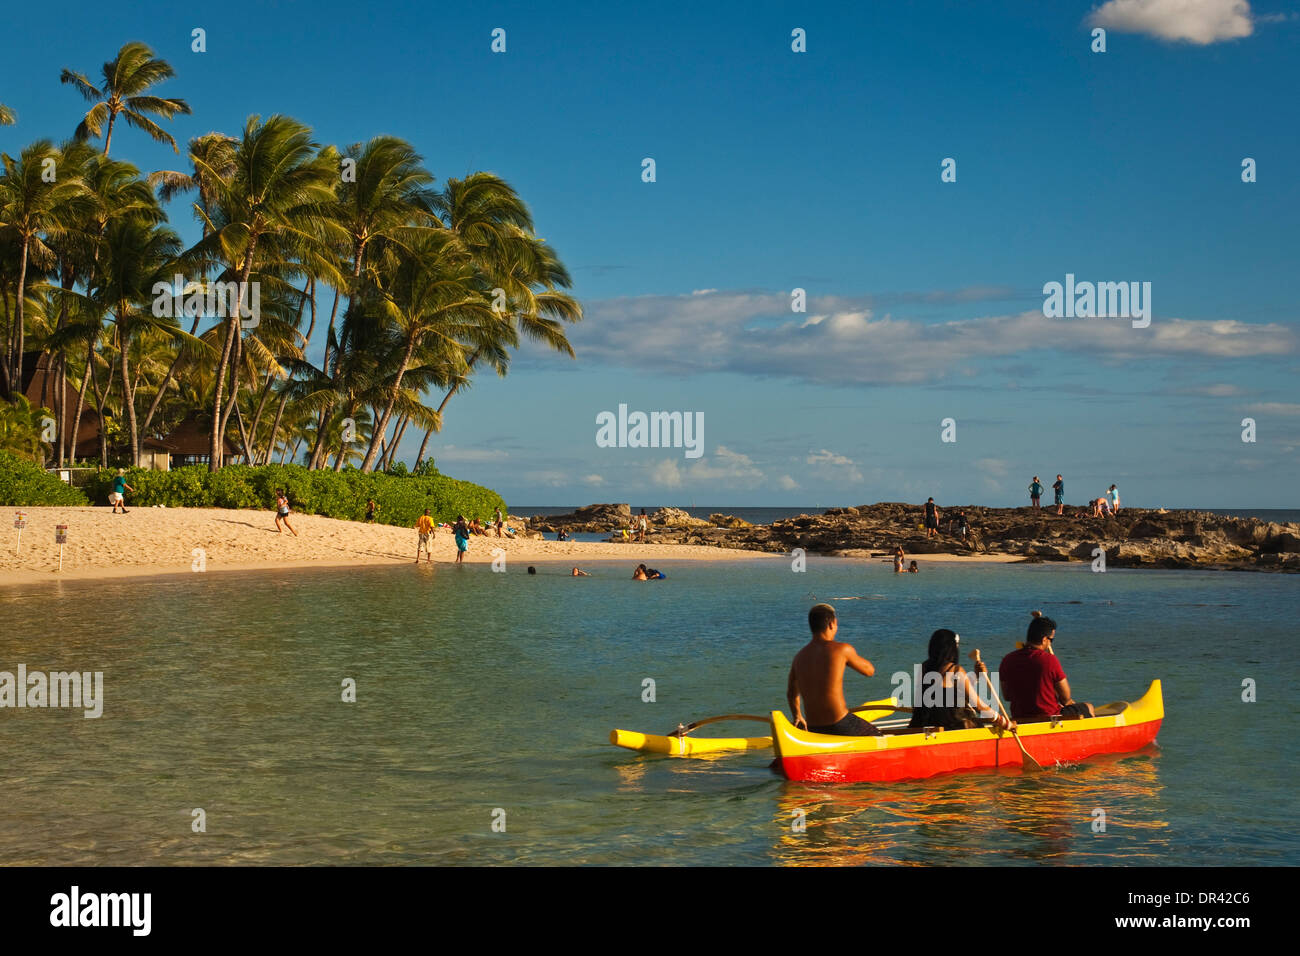 Tourists getting a ride in an outrigger canoe at the Paradise Cove Luau, Kapolei, Oahu, Hawaii - Stock Image